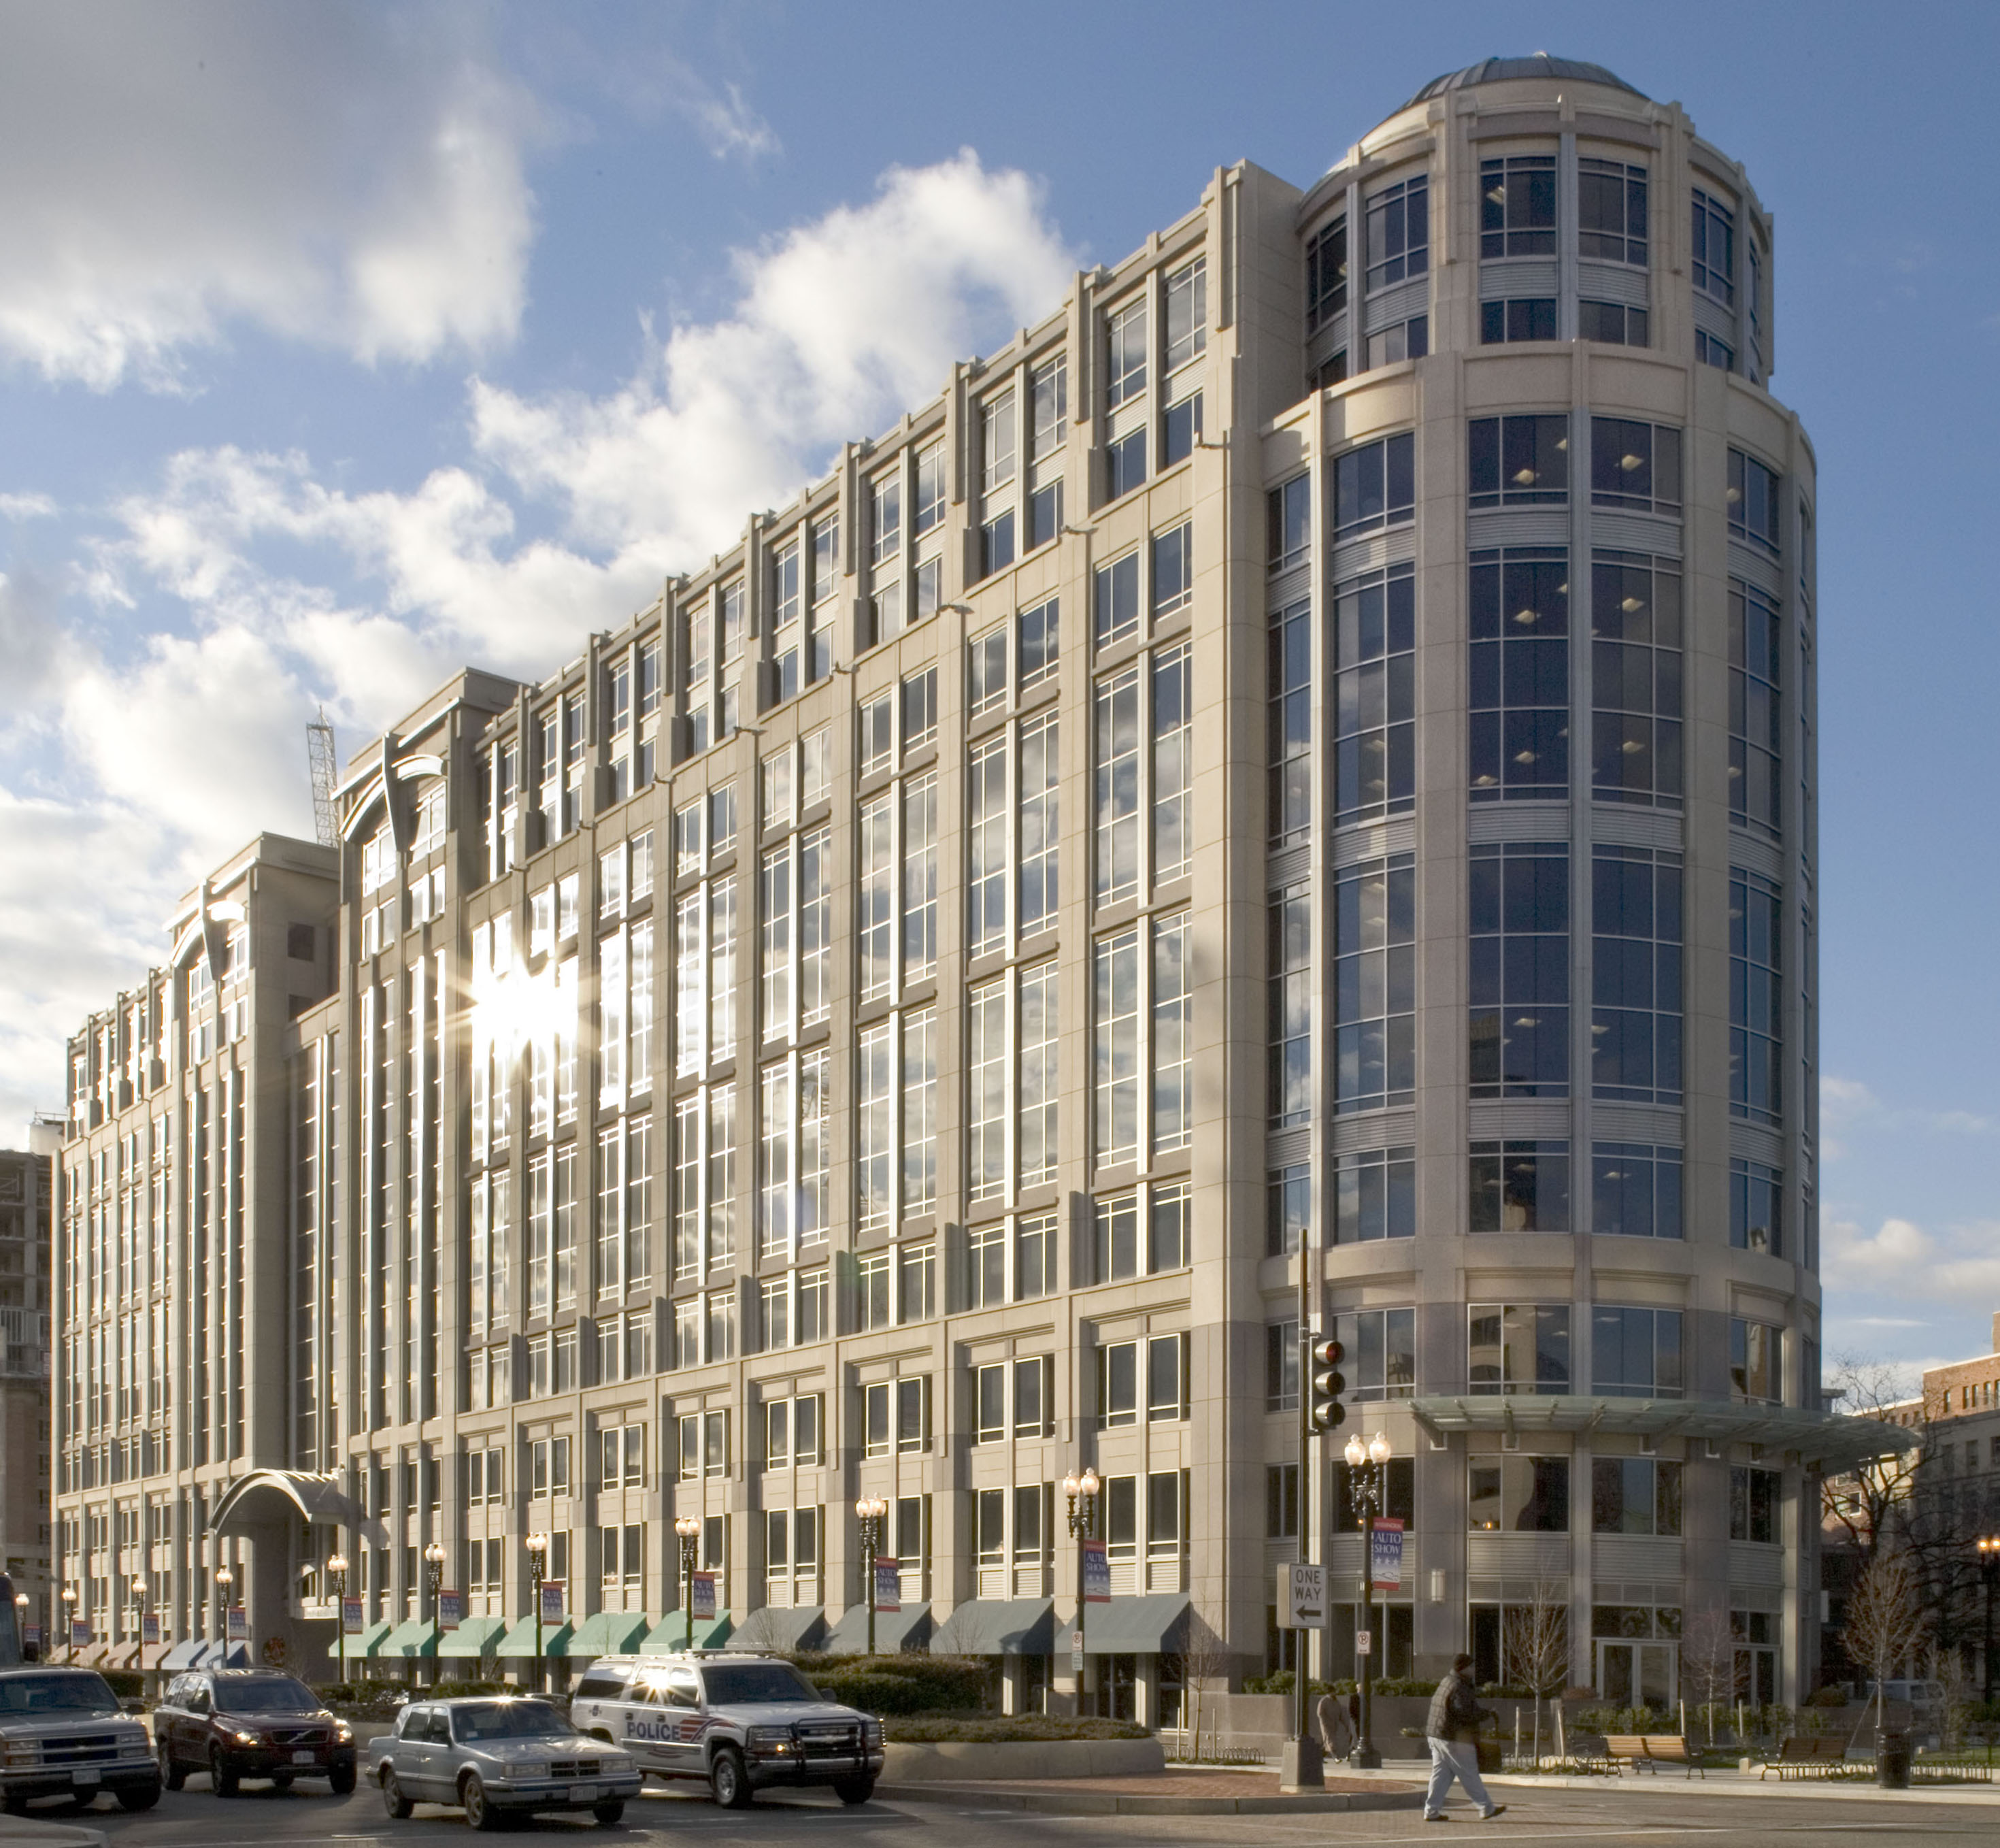 Leed Eb Gold Certification Is Awarded To 901 New York Avenue 3bl